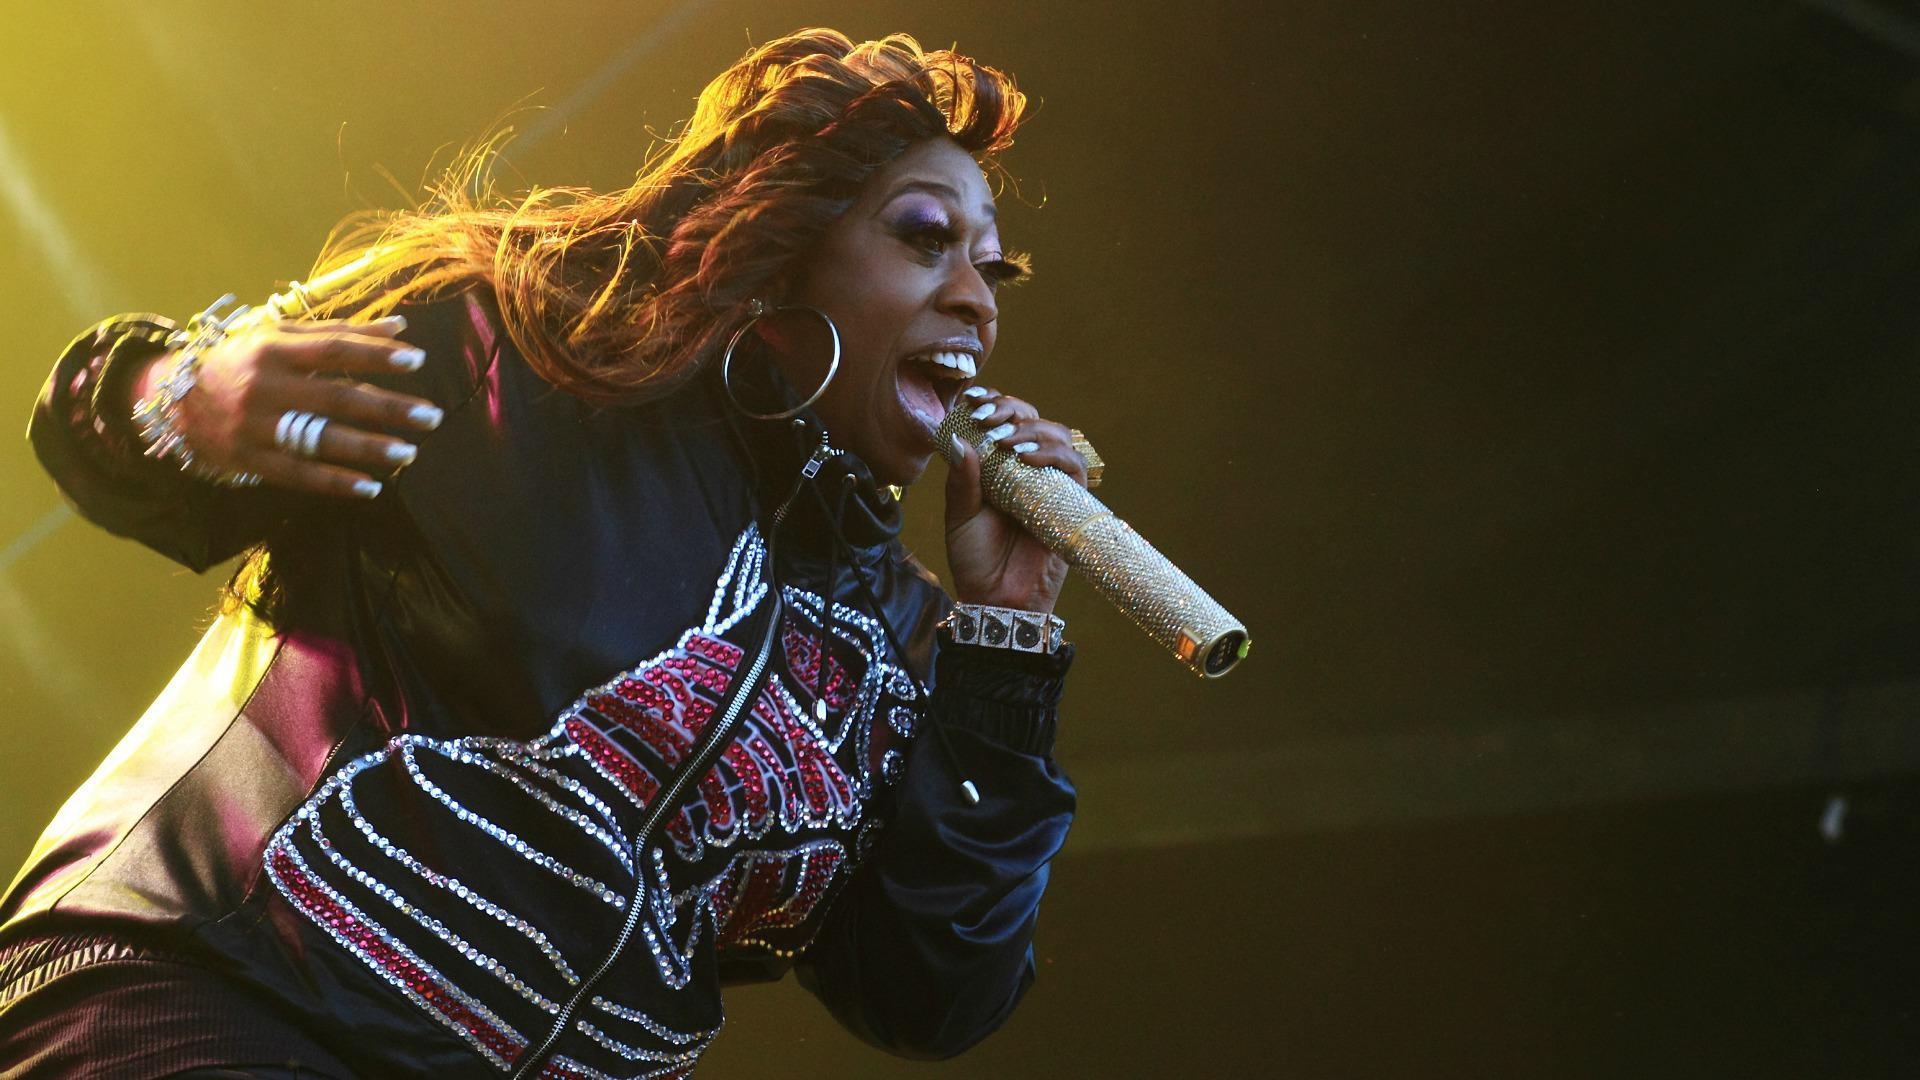 Calm down, people: Missy Elliot has been focusing on her health for a while